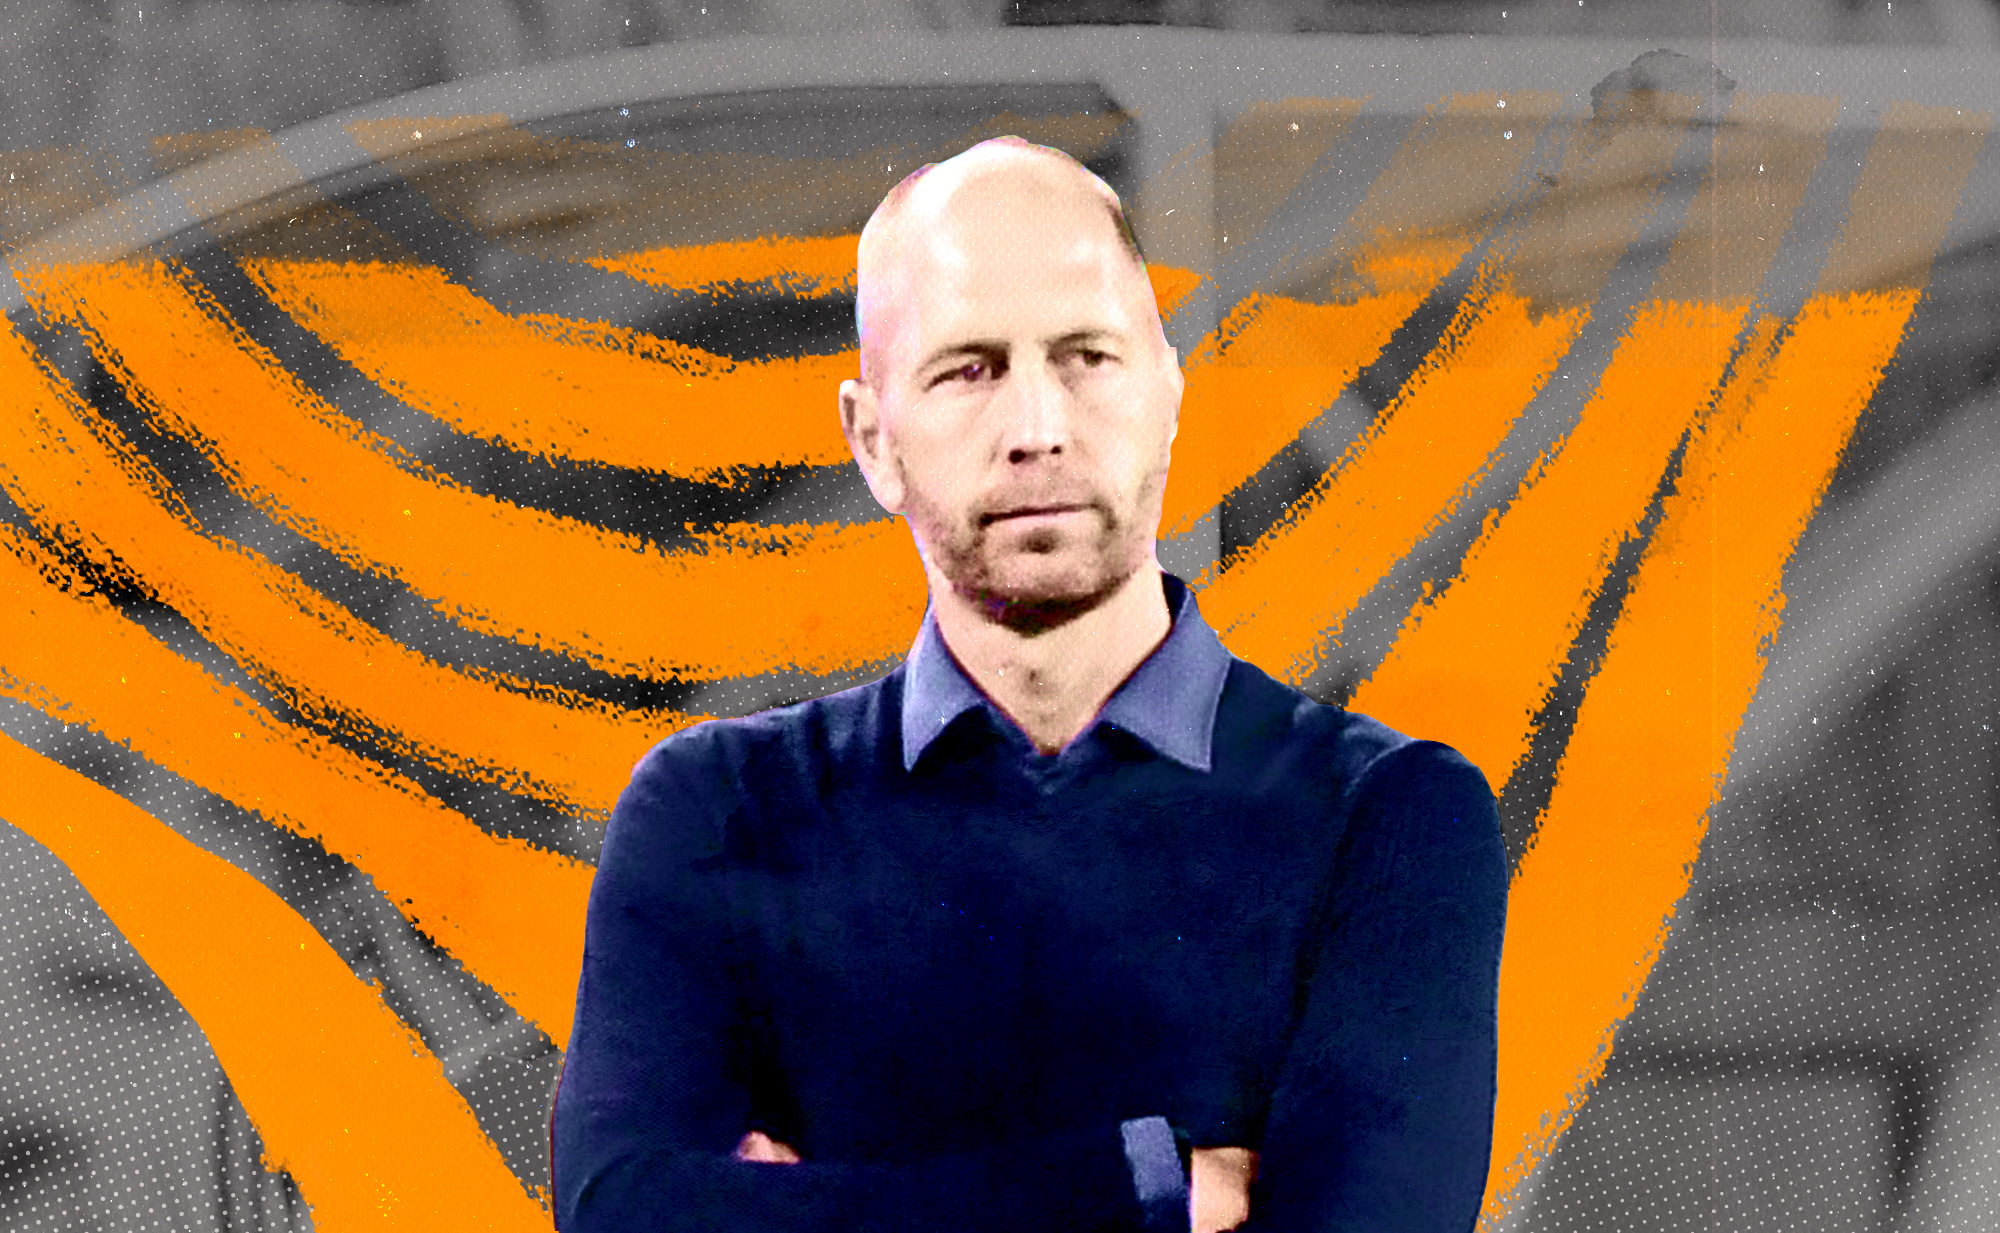 United States Men's National Team head coach Gregg Berhalter standing with his arms folded on his chest in front of an orange illustrated background.